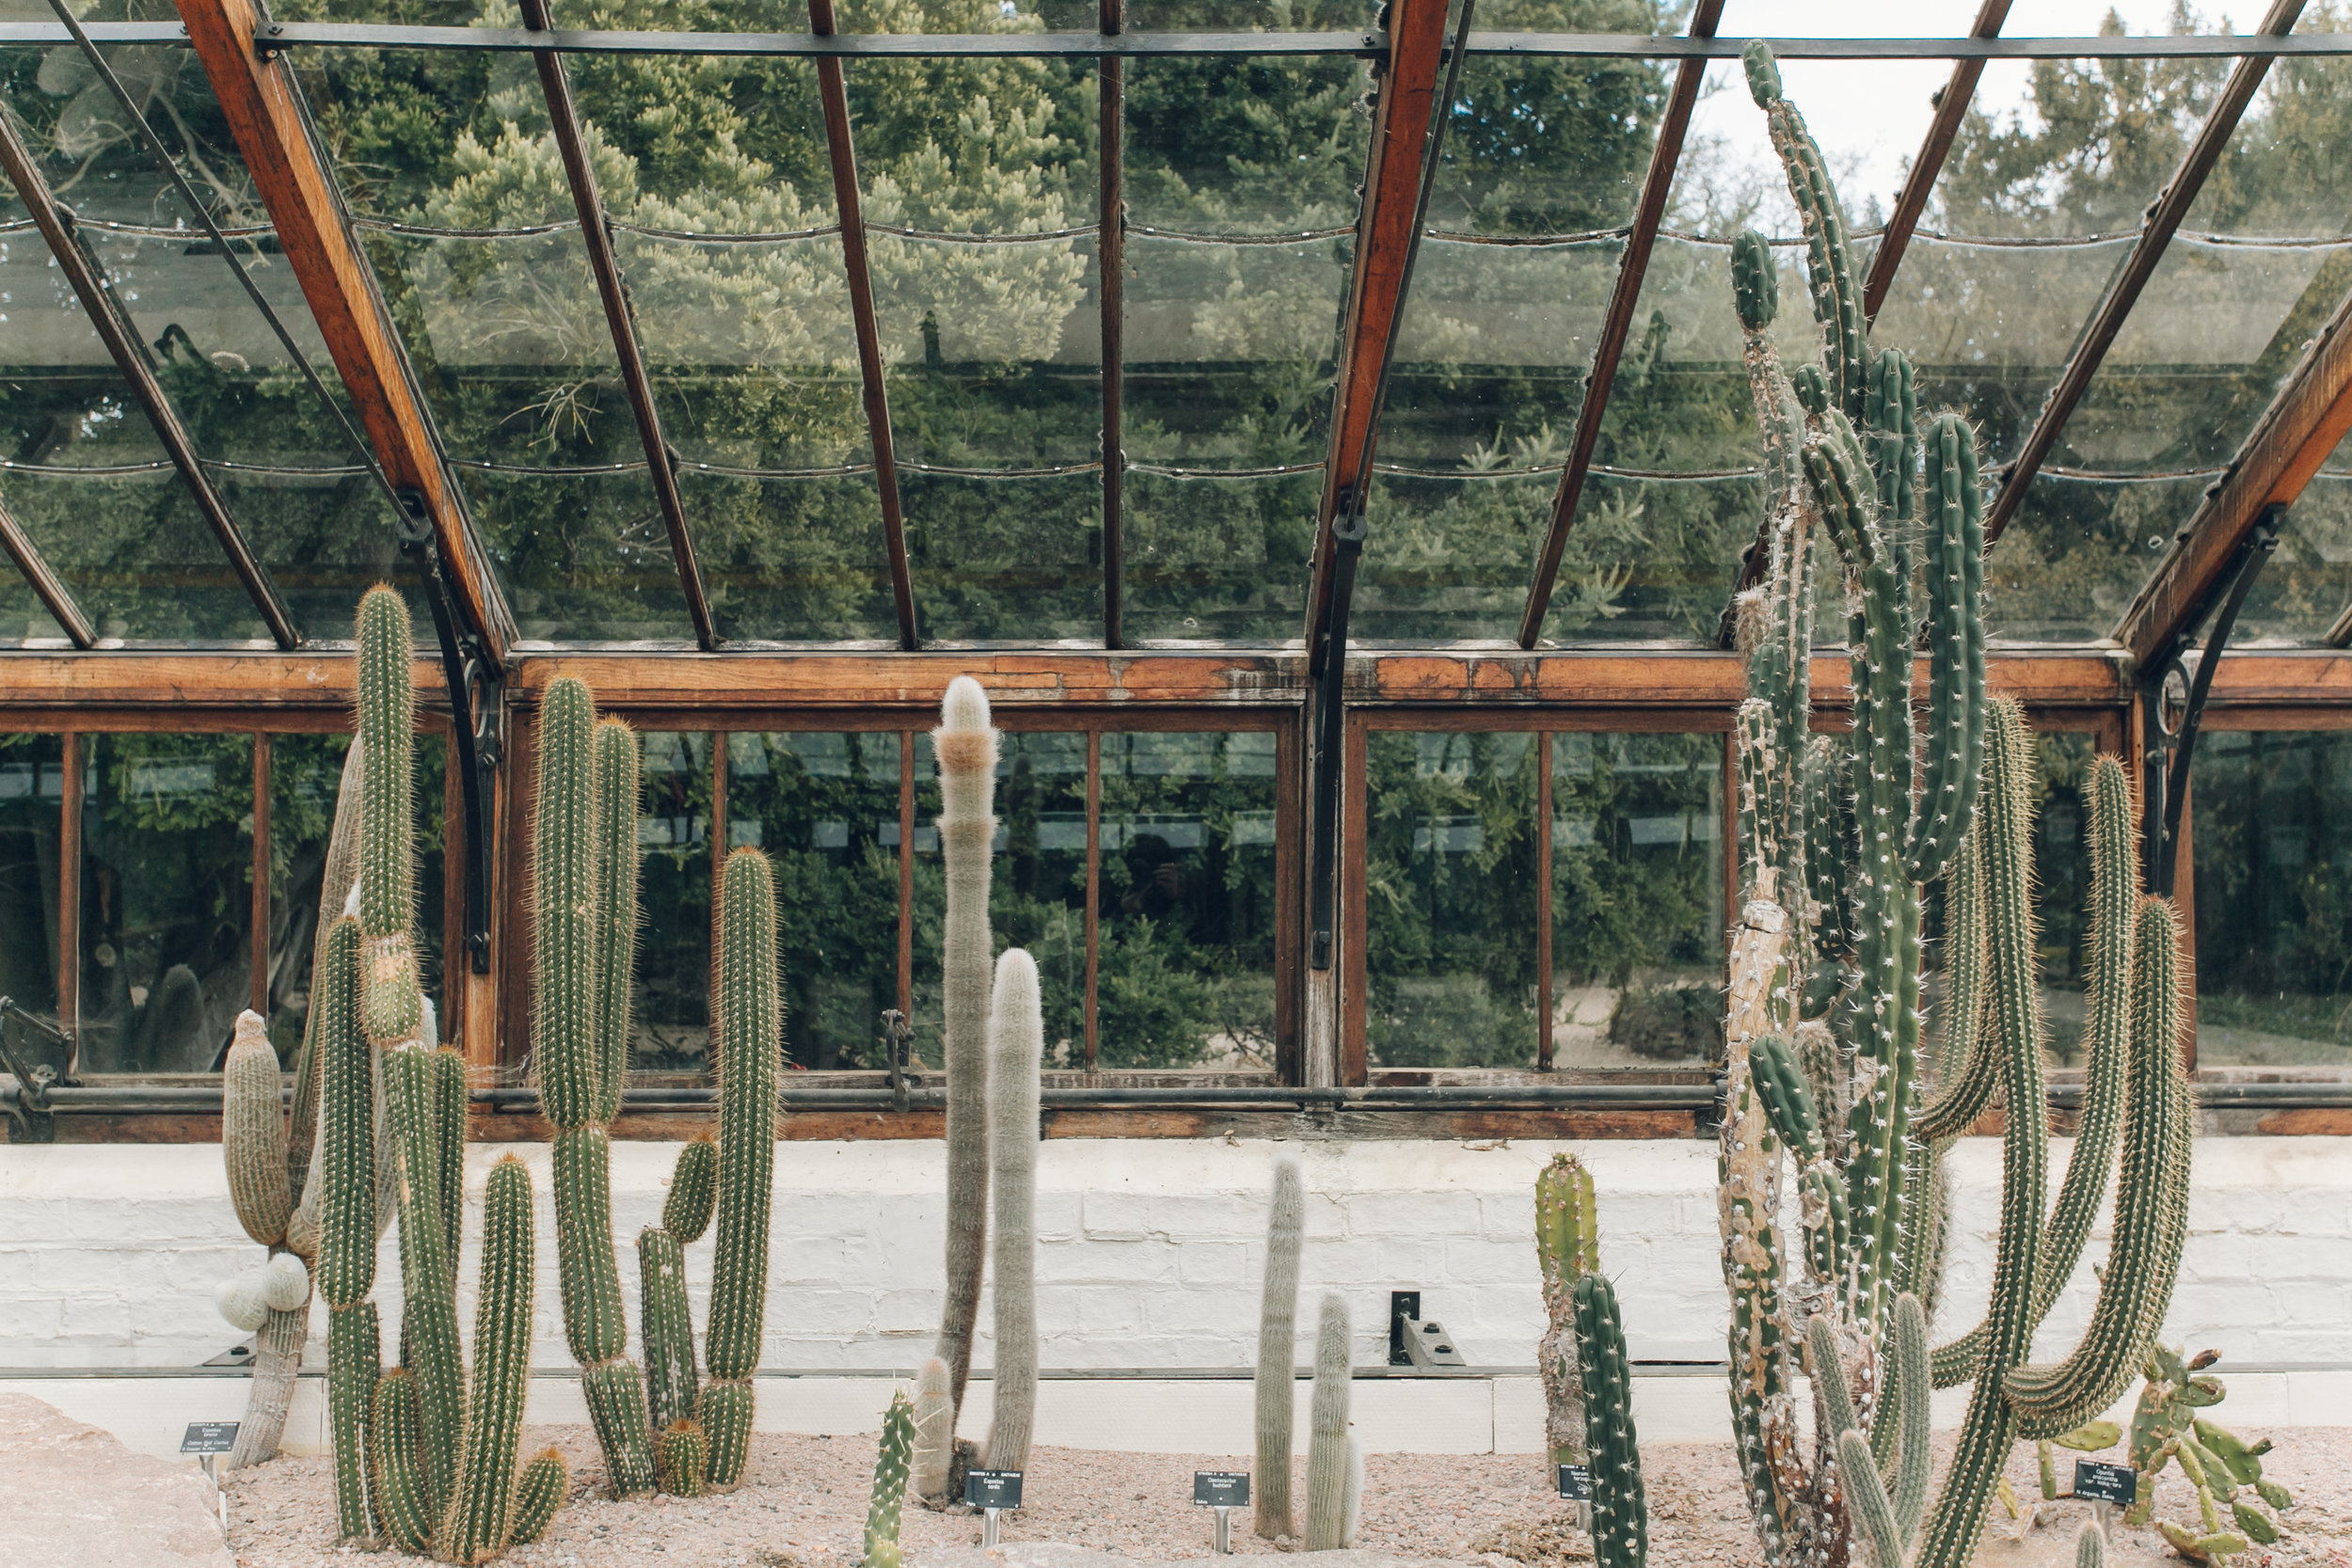 University of Cambridge Botanic Garden, photographed by Haarkon